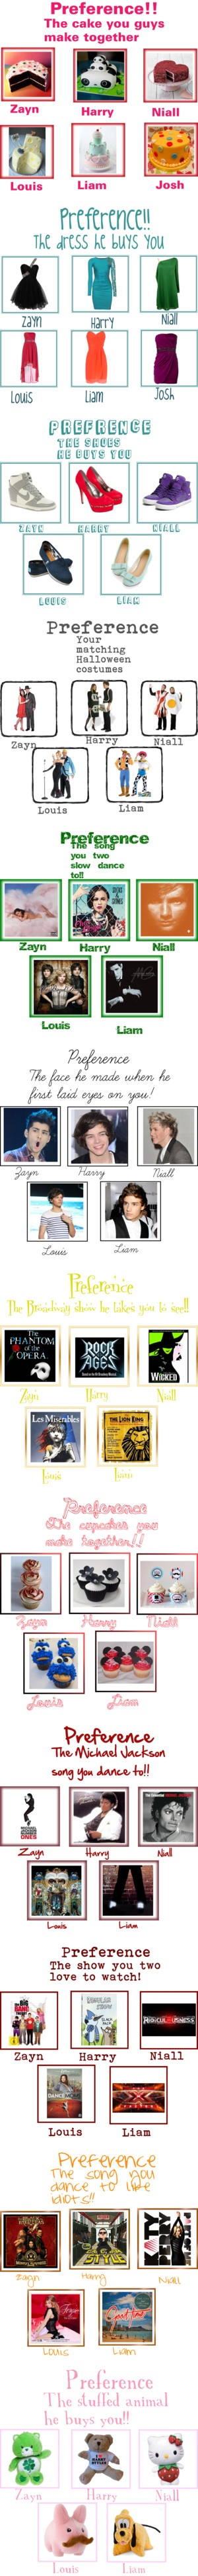 """One Direction Preferences I made!!"" by danielleabit0feverything ❤ liked on Polyvore"